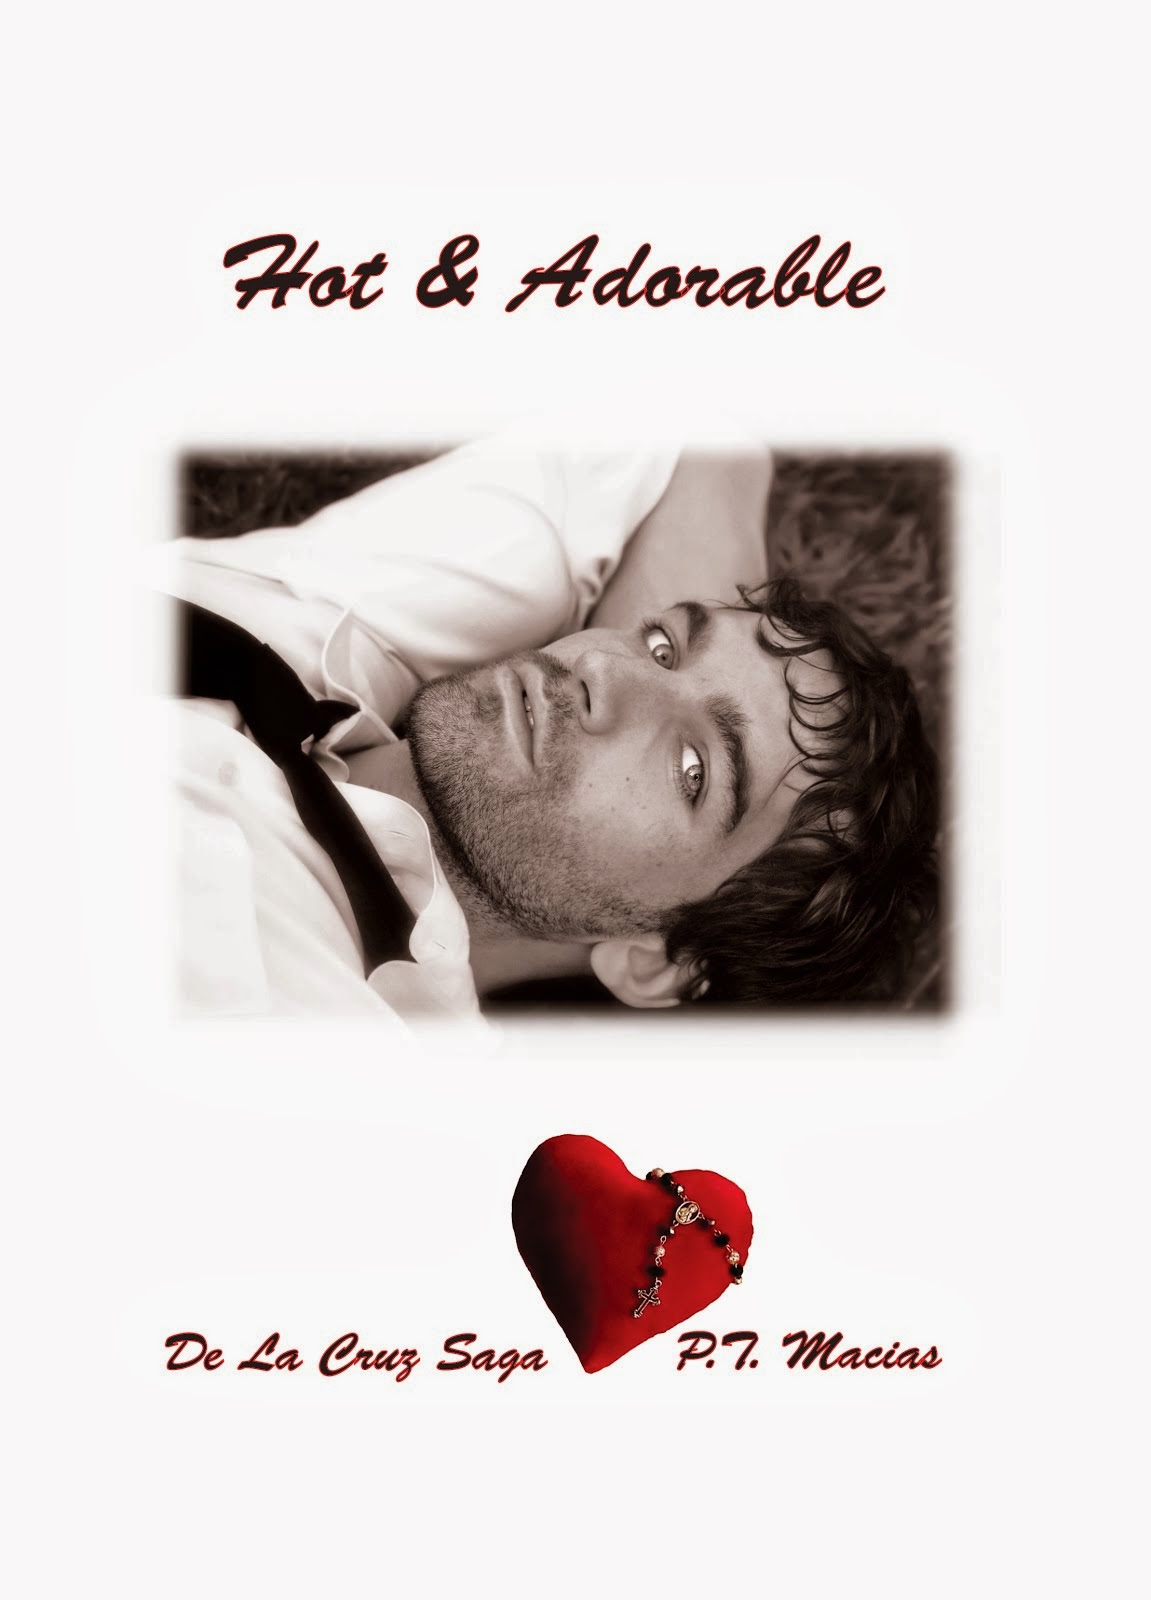 Hot & Adorable, De La Cruz Saga By P.T. Macias